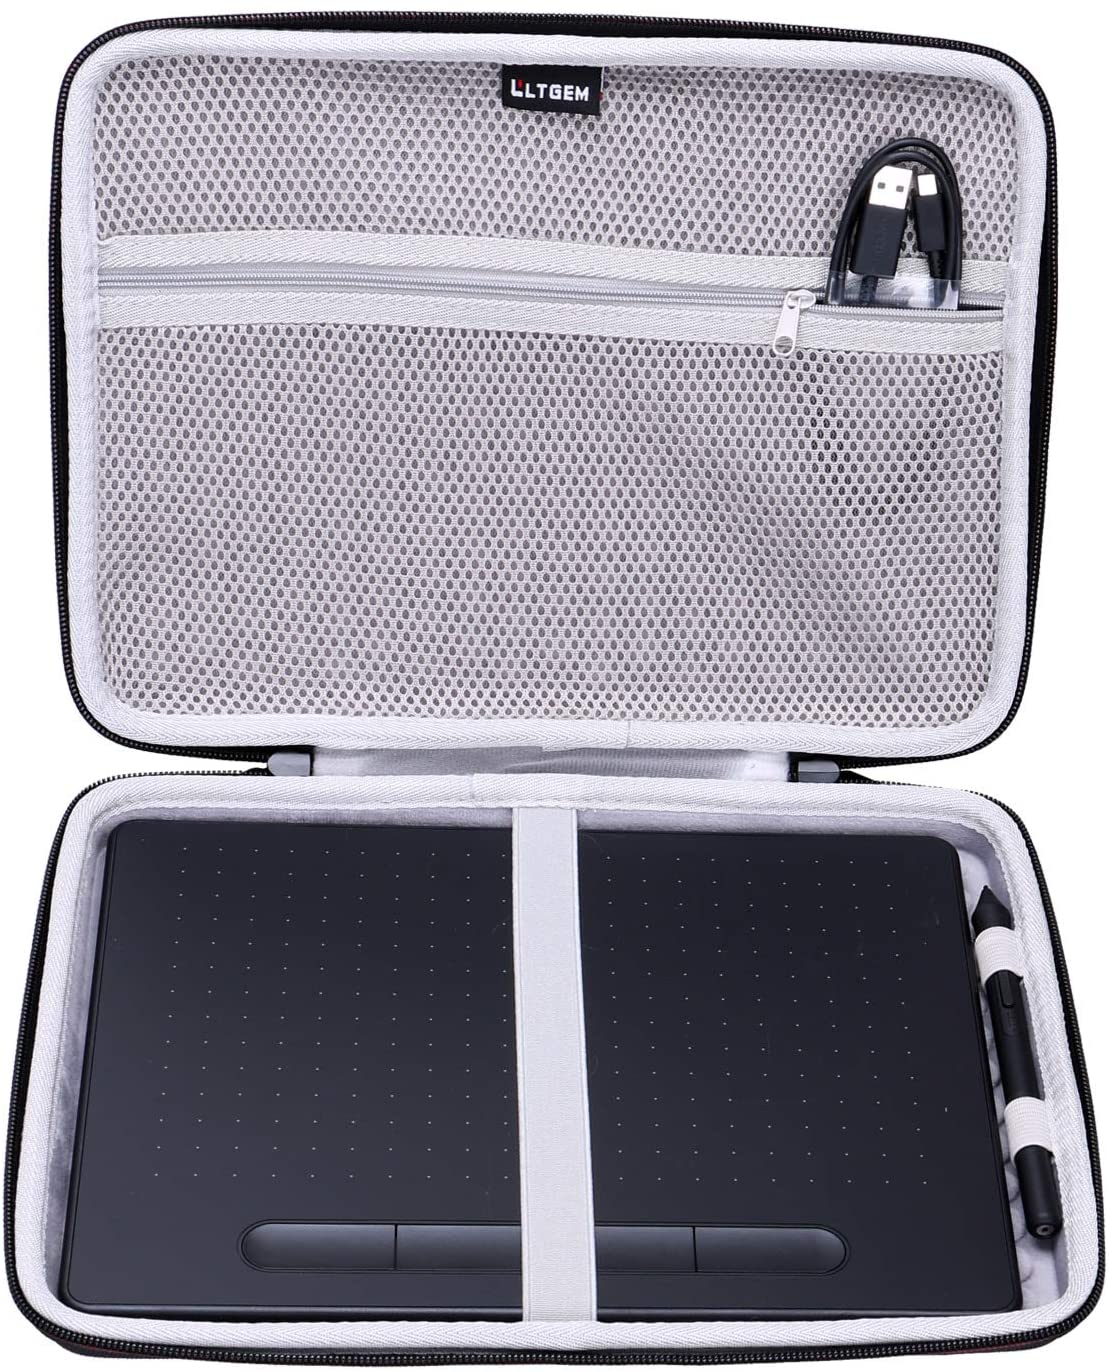 LTGEM EVA Hard Case Fit for Wacom Intuos Wireless Graphic Medium Tablet, Size 10.4